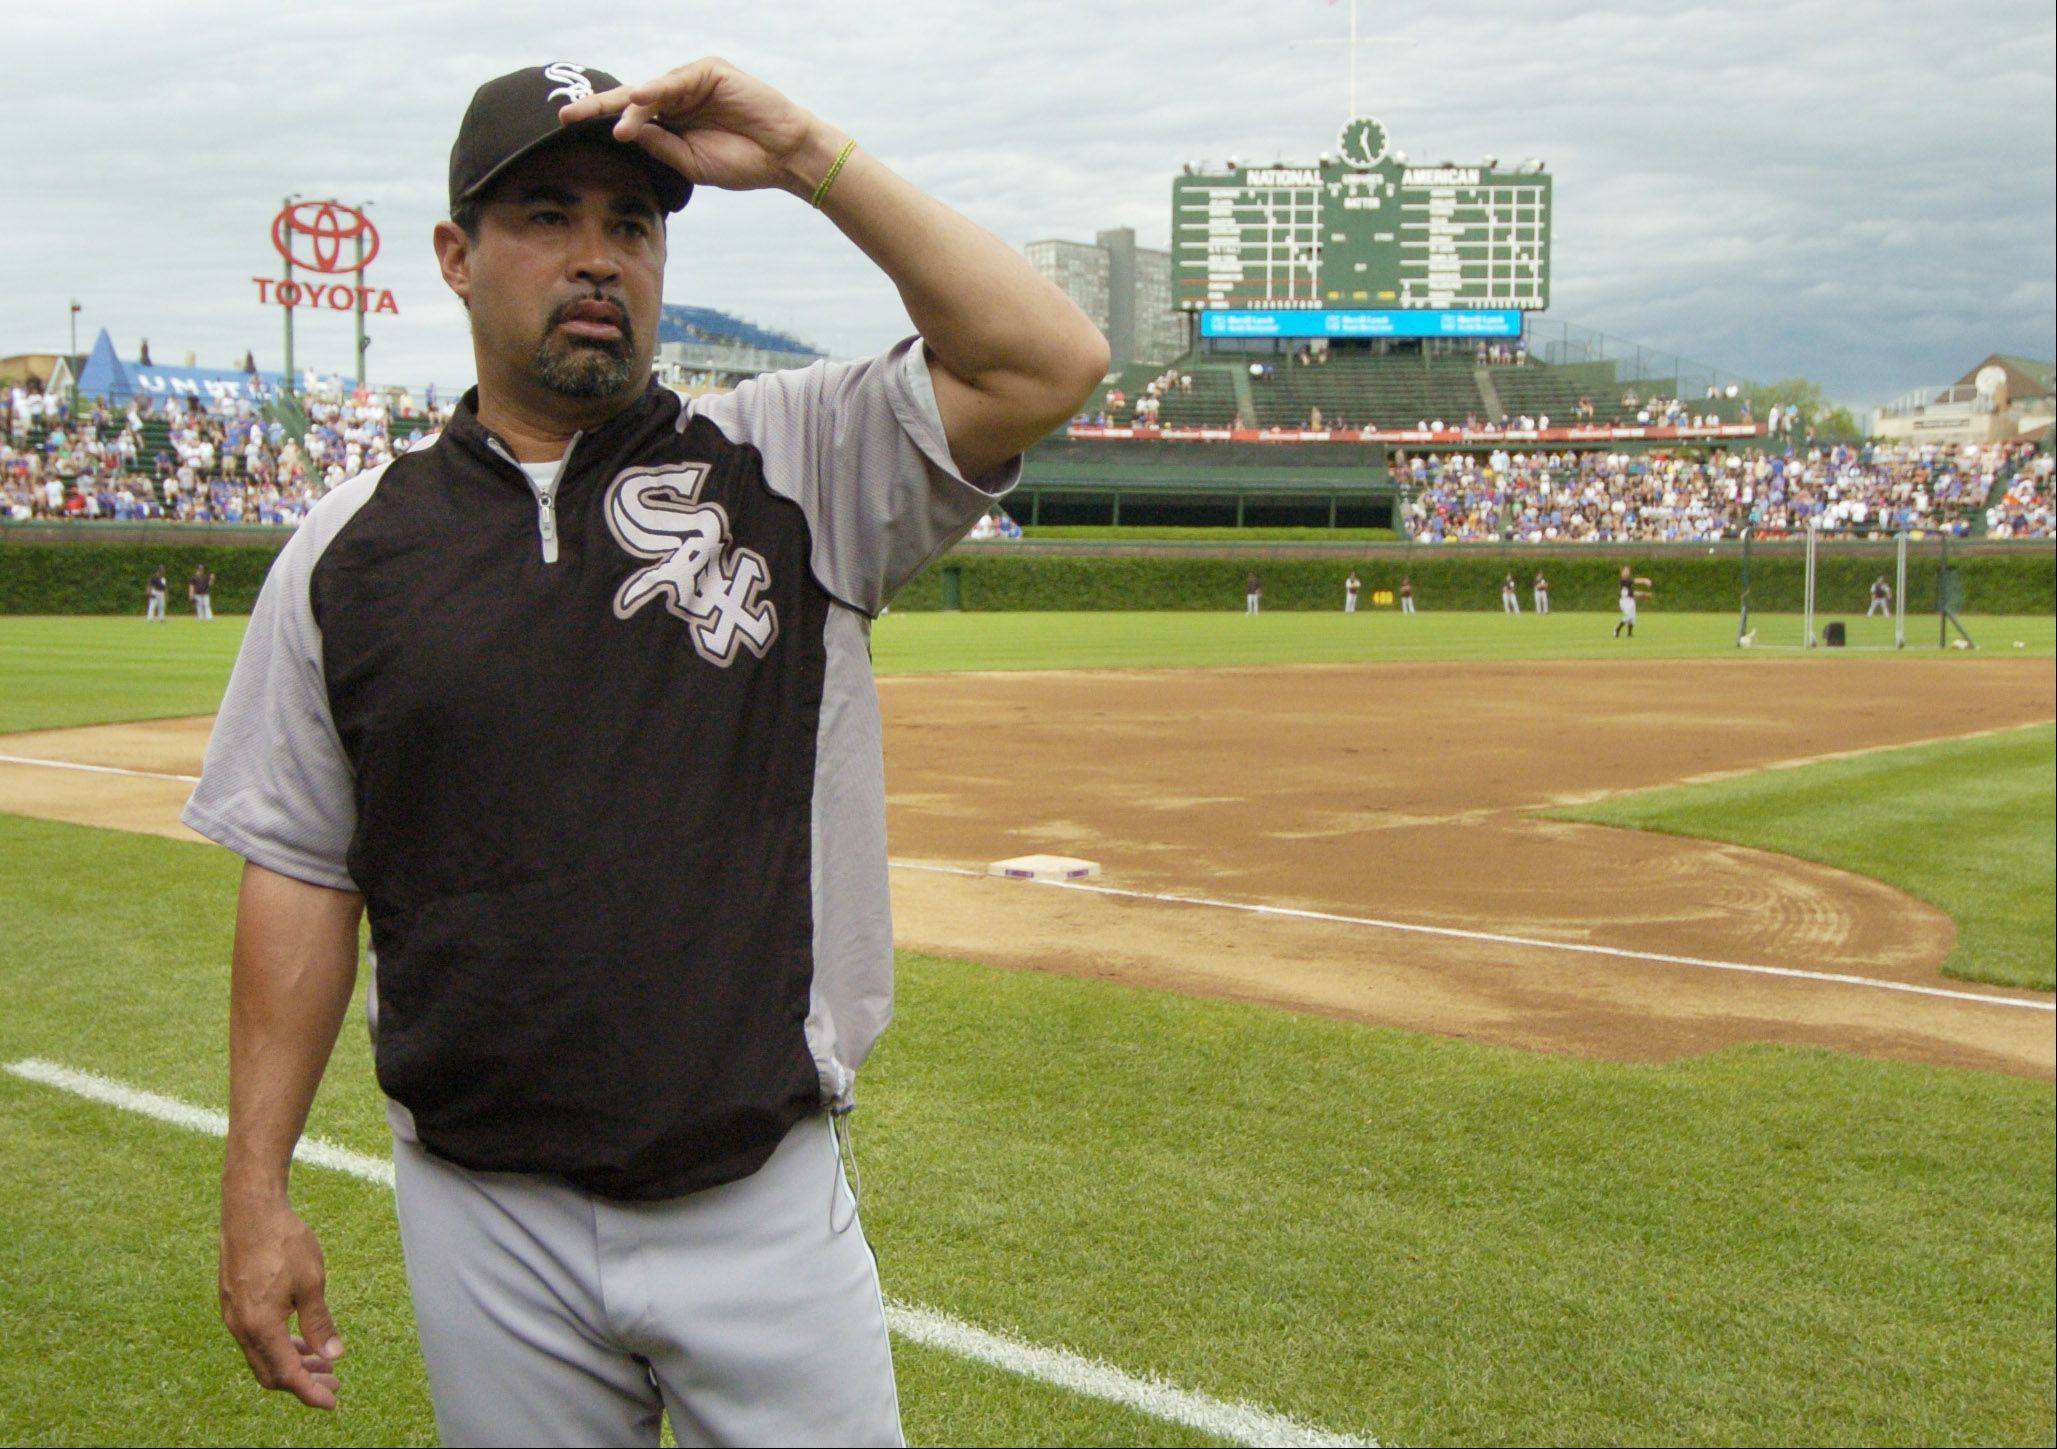 Chicago White Sox manager Ozzie Guillen awaits the start of Friday's game against the Cubs at Wrigley Field.